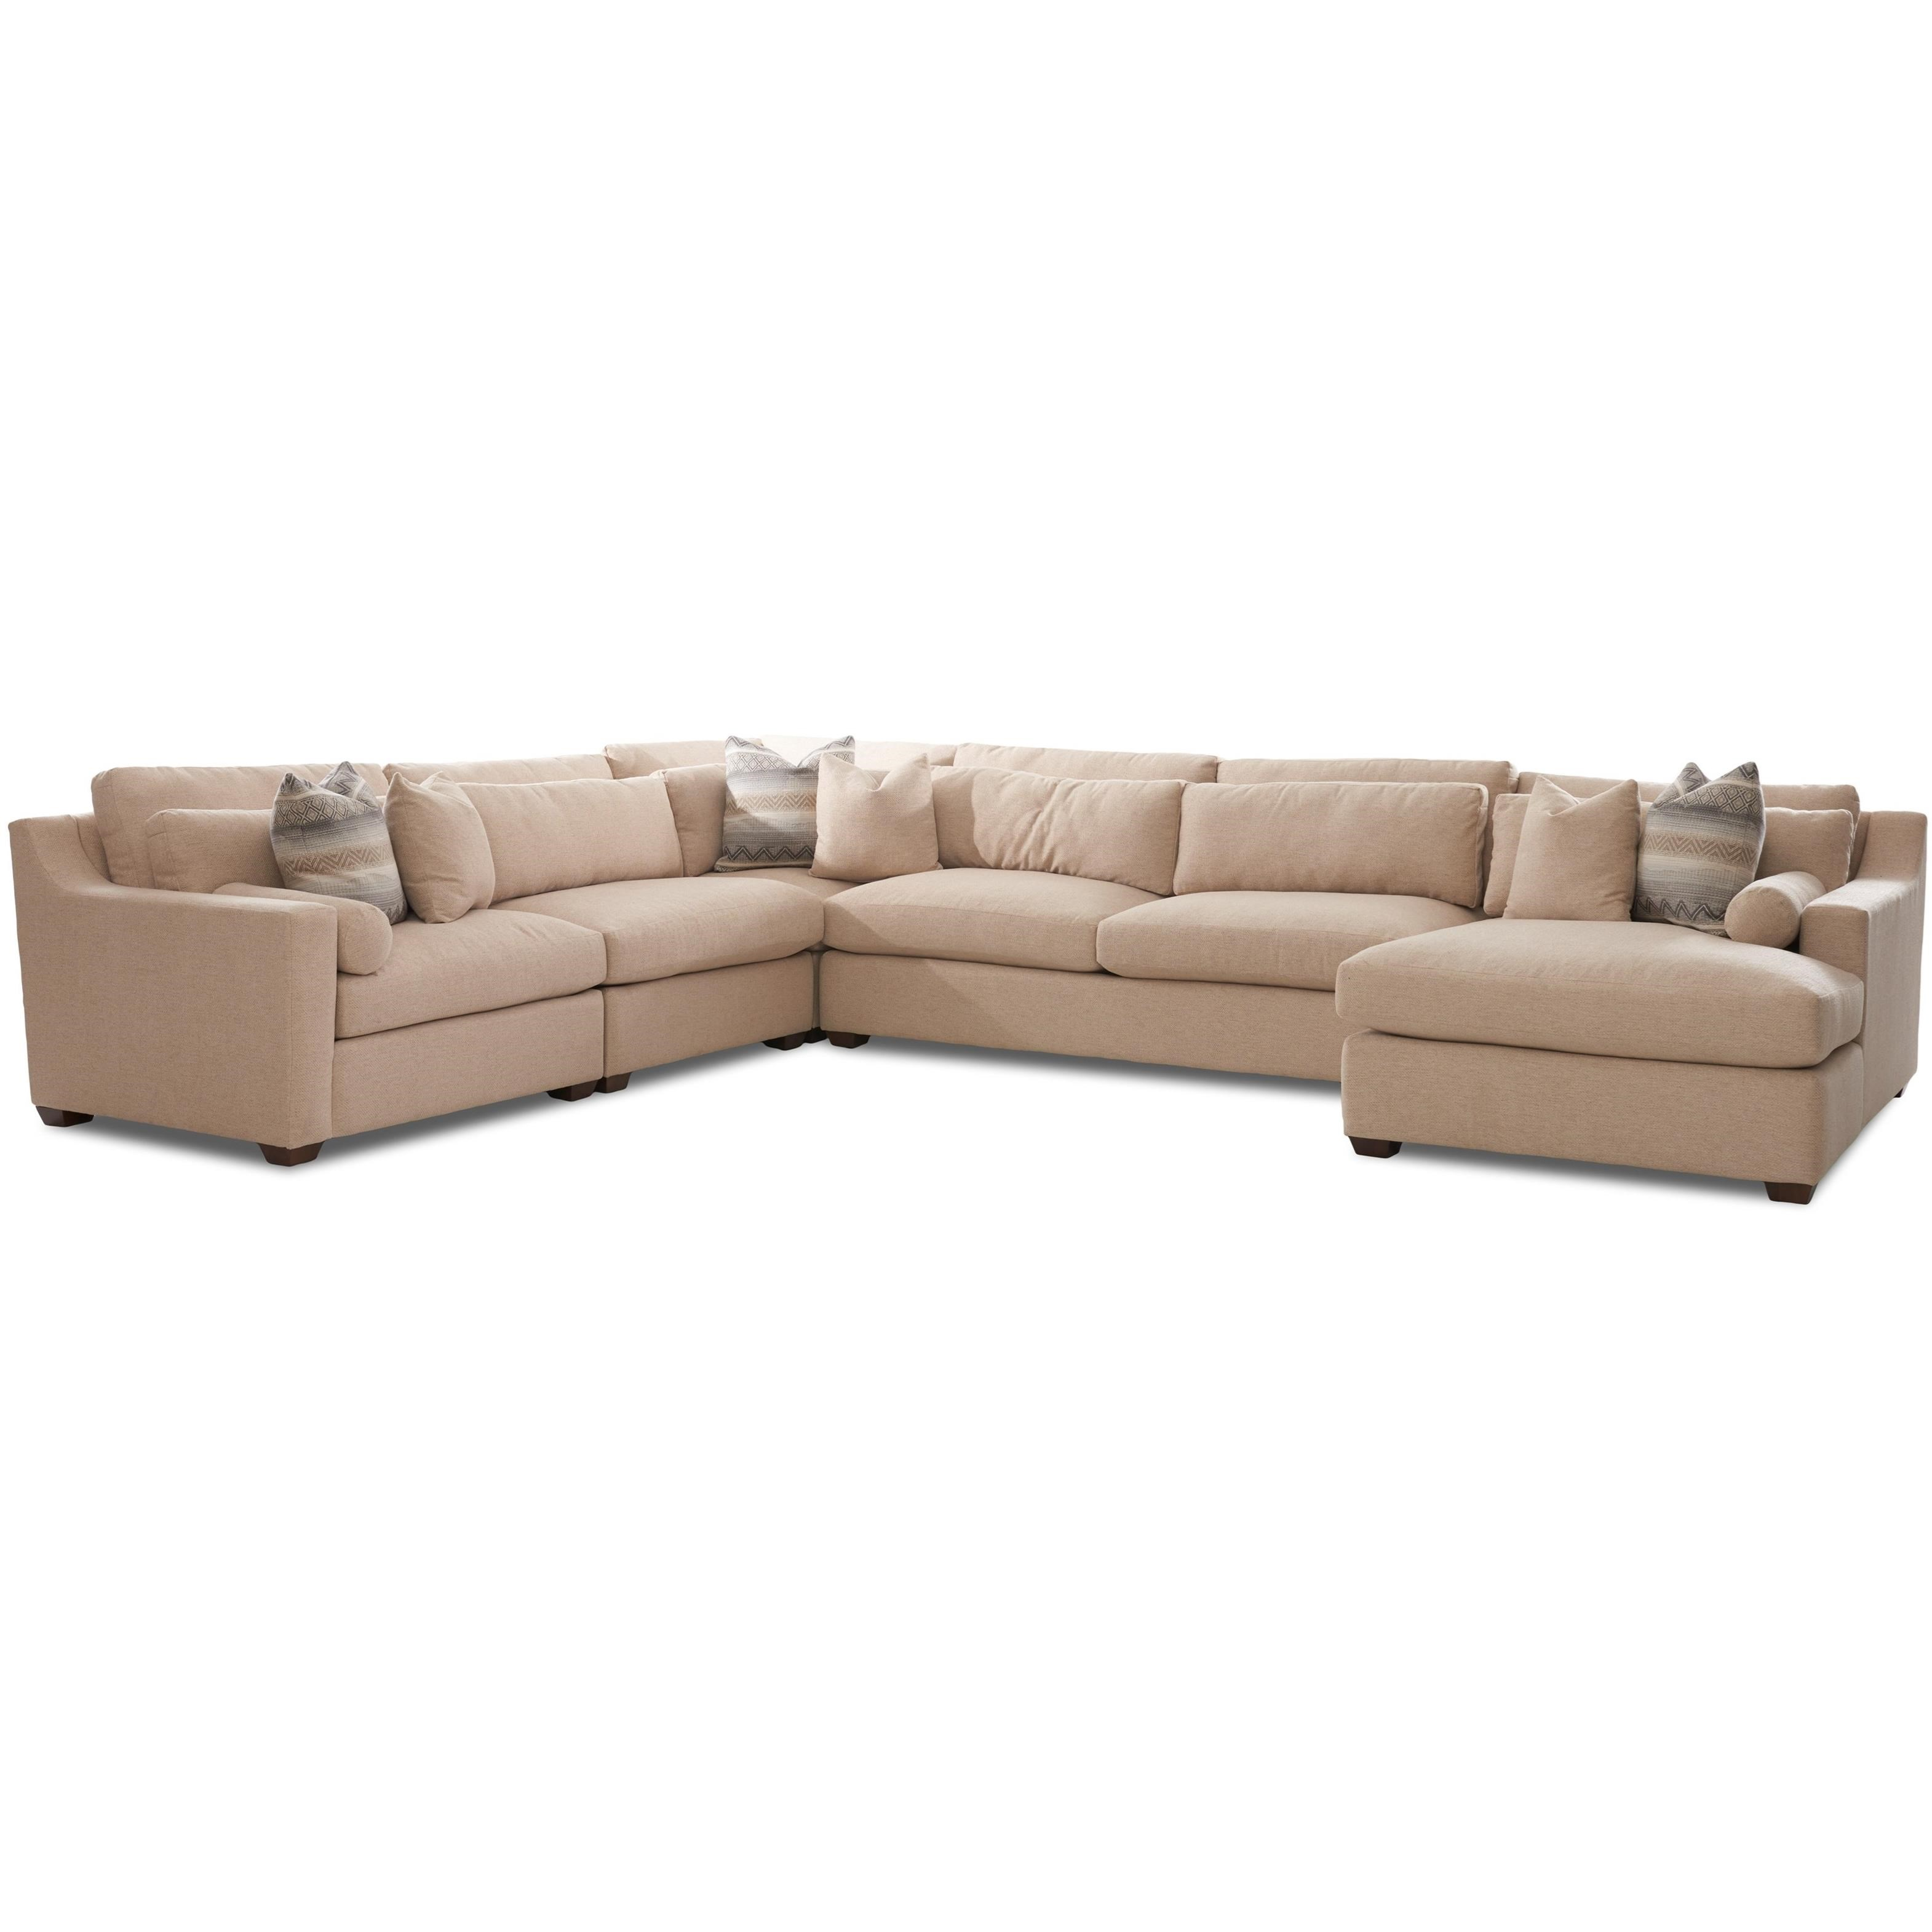 Klaussner Roan Contemporary Sofa Sectional With Right Facing